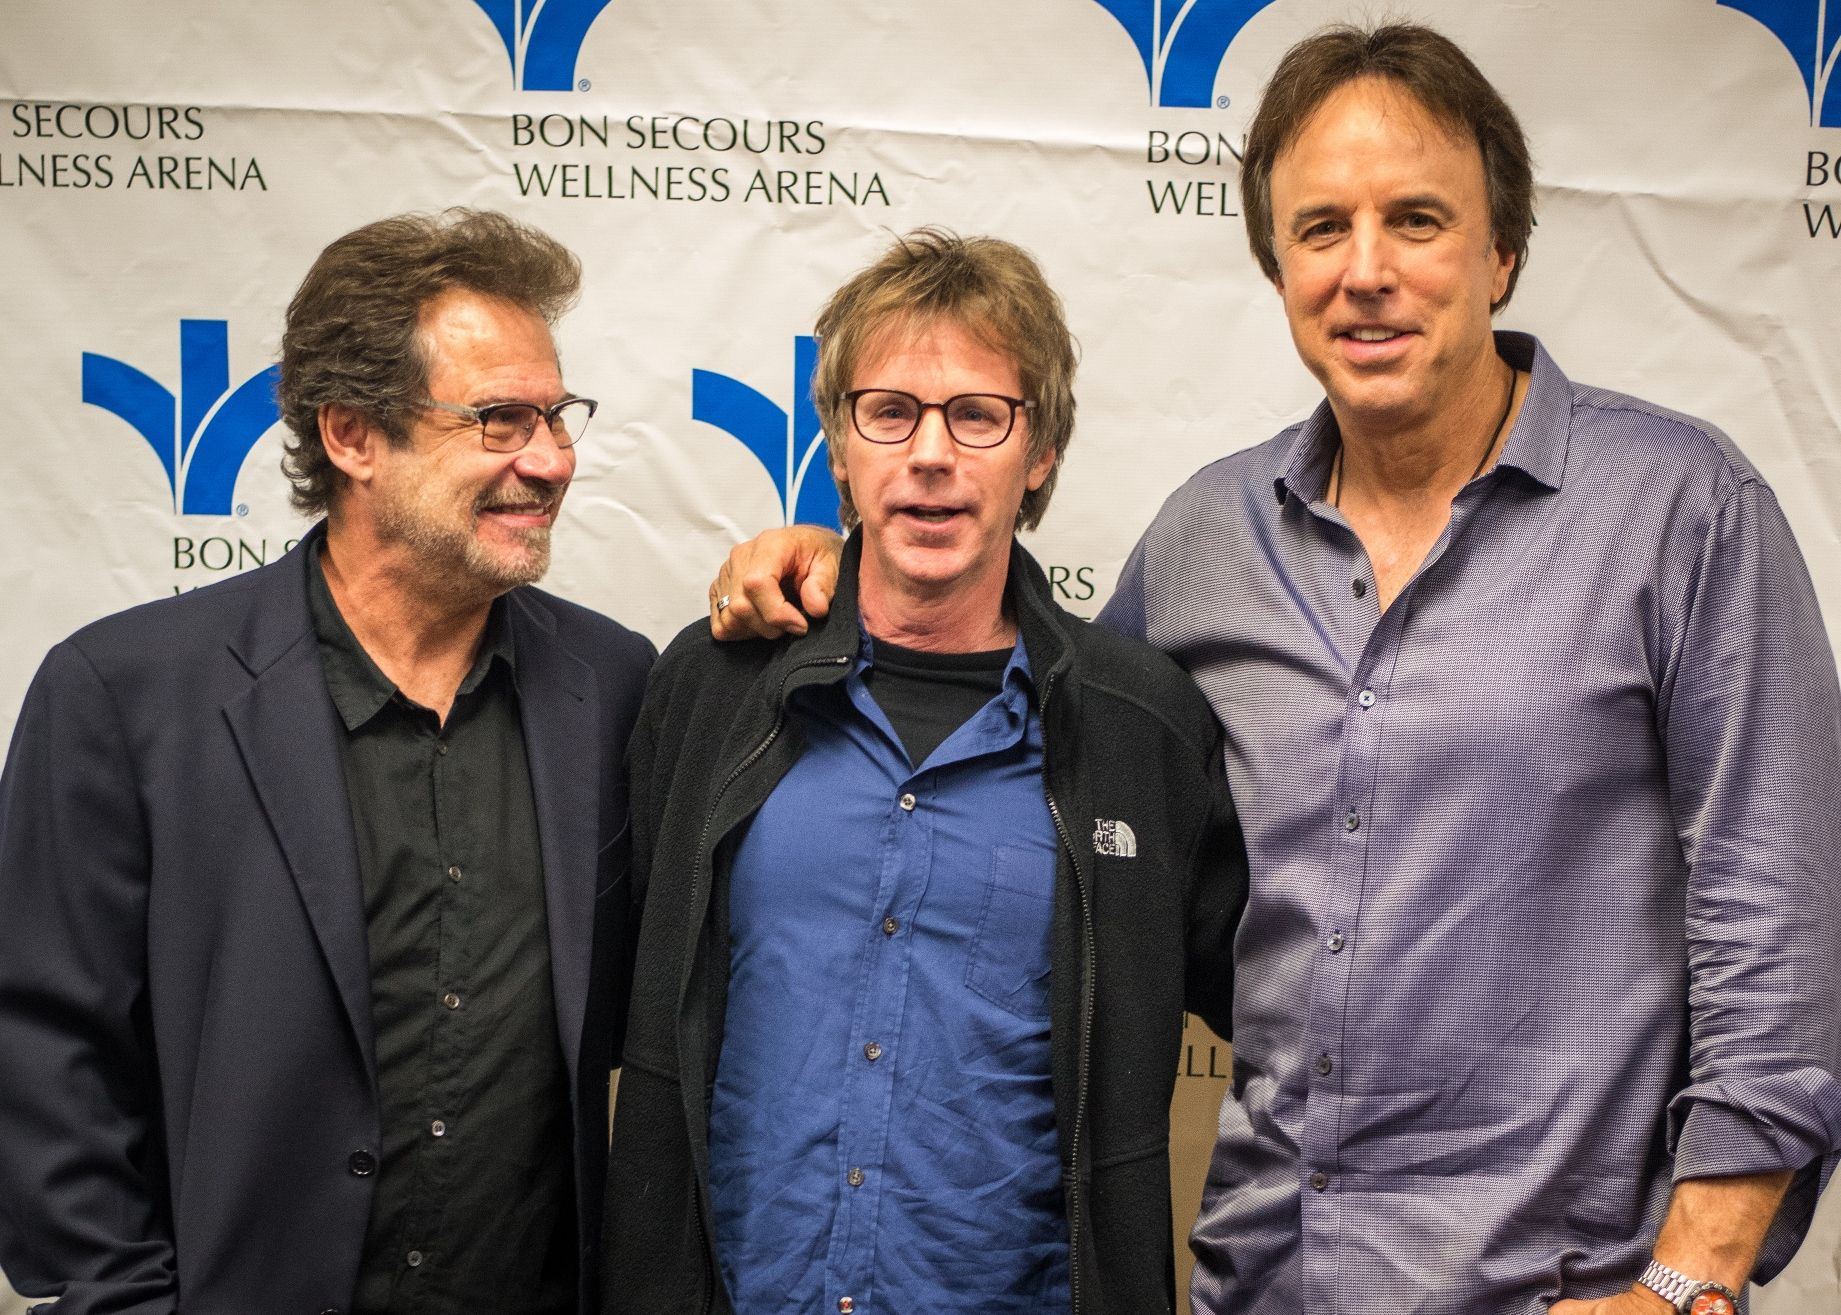 Meet And Greet With Dana Carvey Dennis Miller And Kevin Nealon At